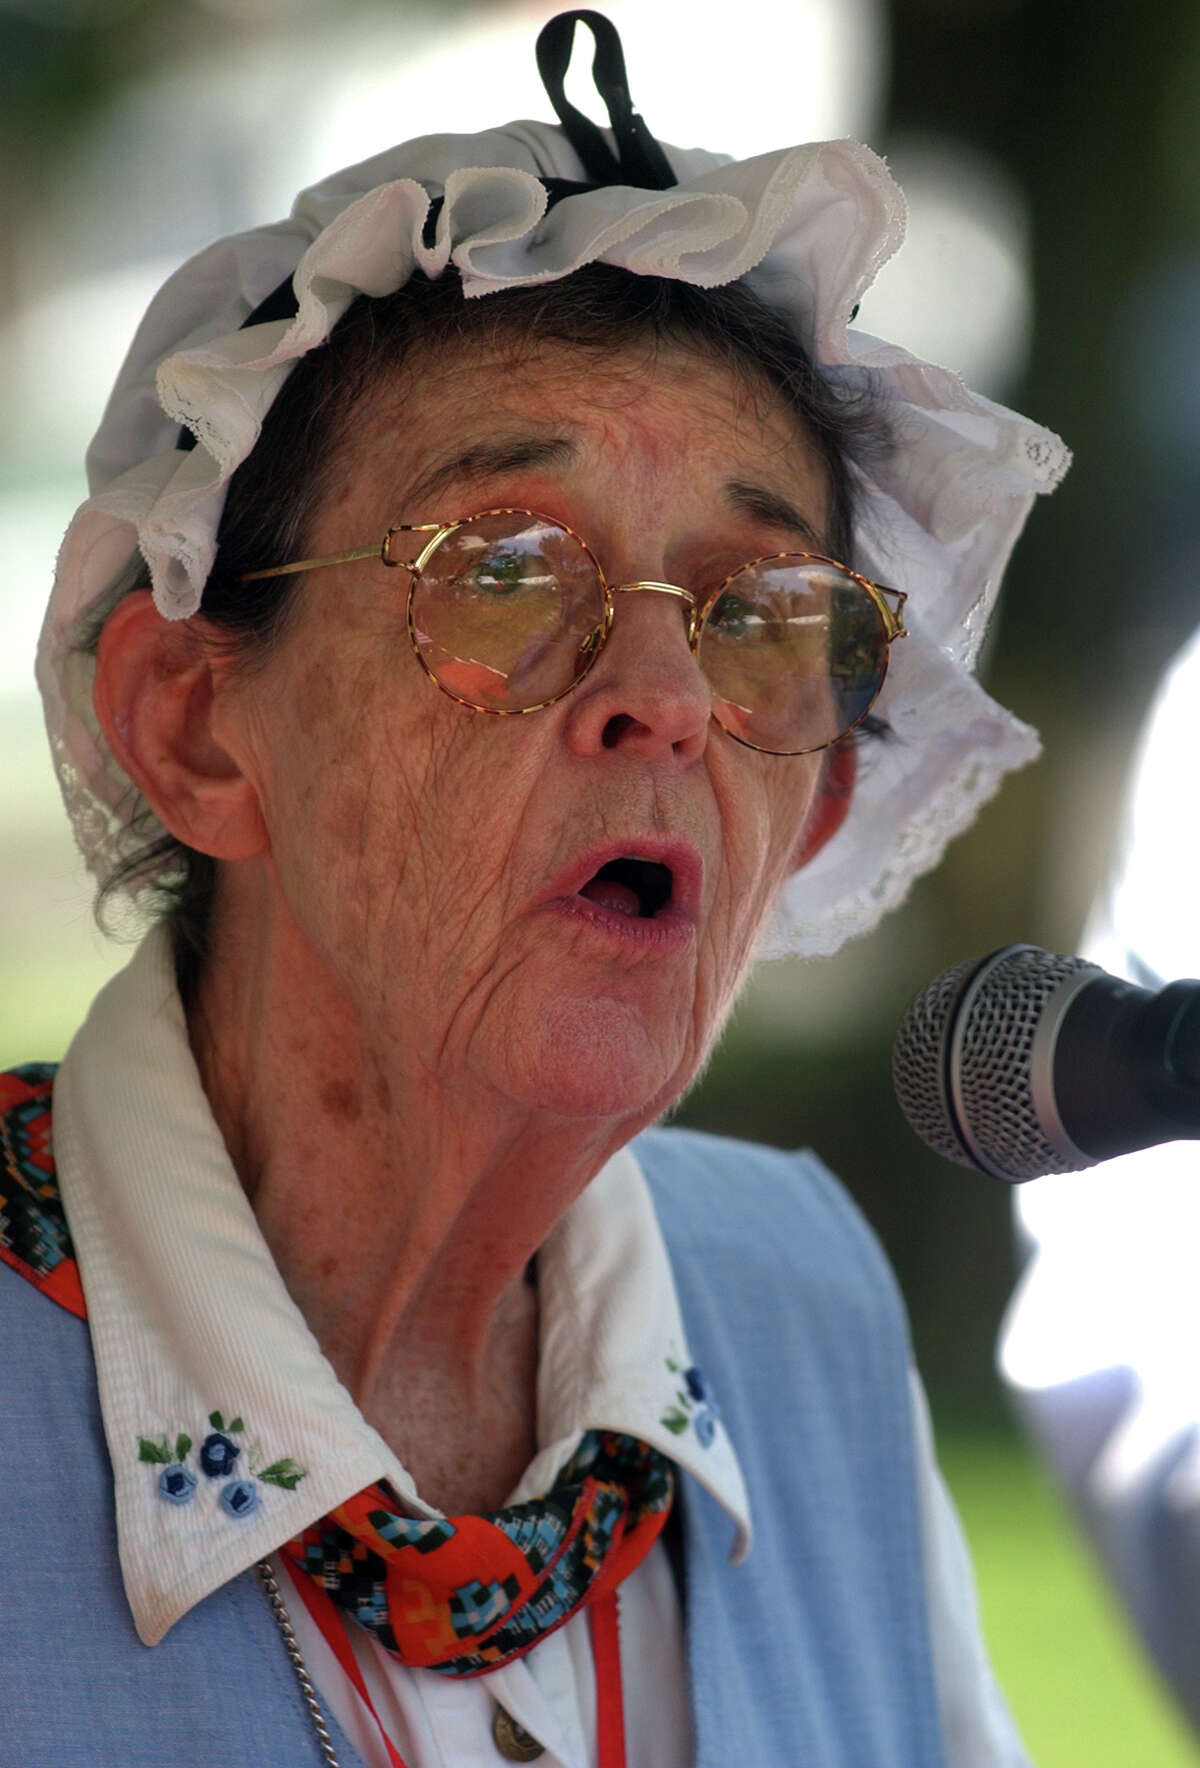 Rosemary Scarpa sings the Star Spangled Banner, during bell ringing ceremony to celebrate Independence Day, which was held on the green in Milford, Conn. on Wednesday July 4, 2012. Accompanying her on piano was Joe Mele.